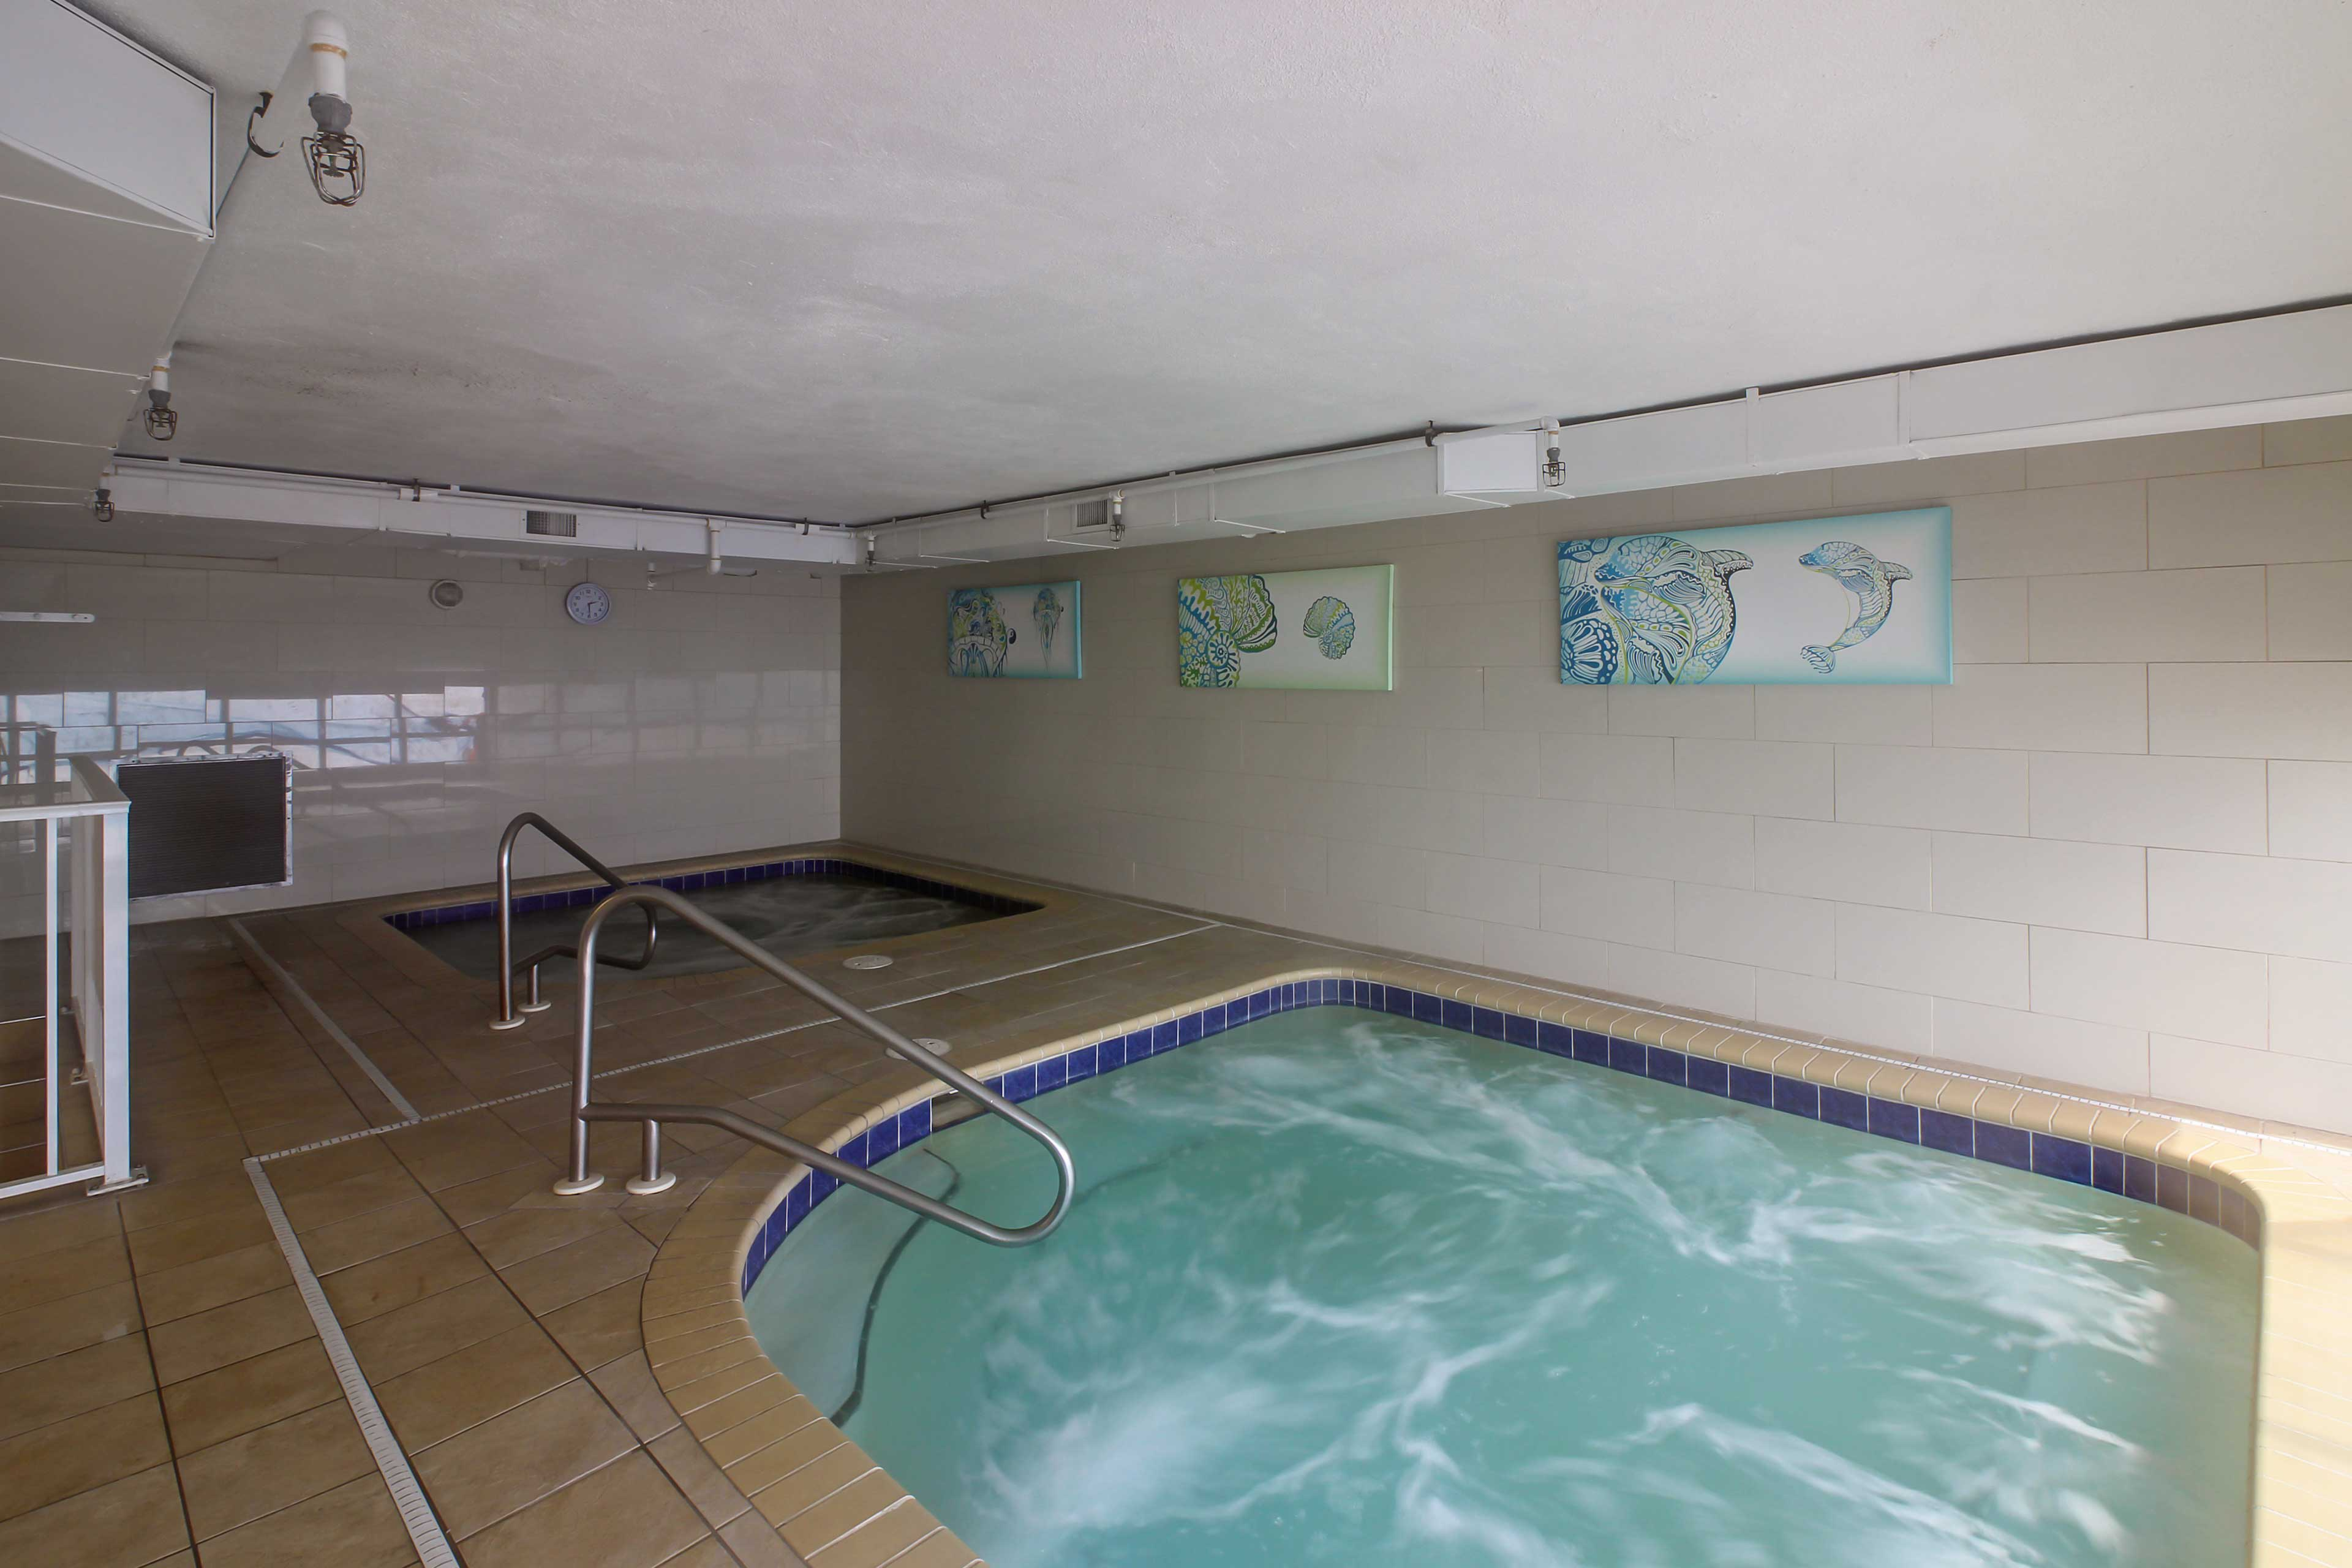 Soak your muscles in the community hot tub.